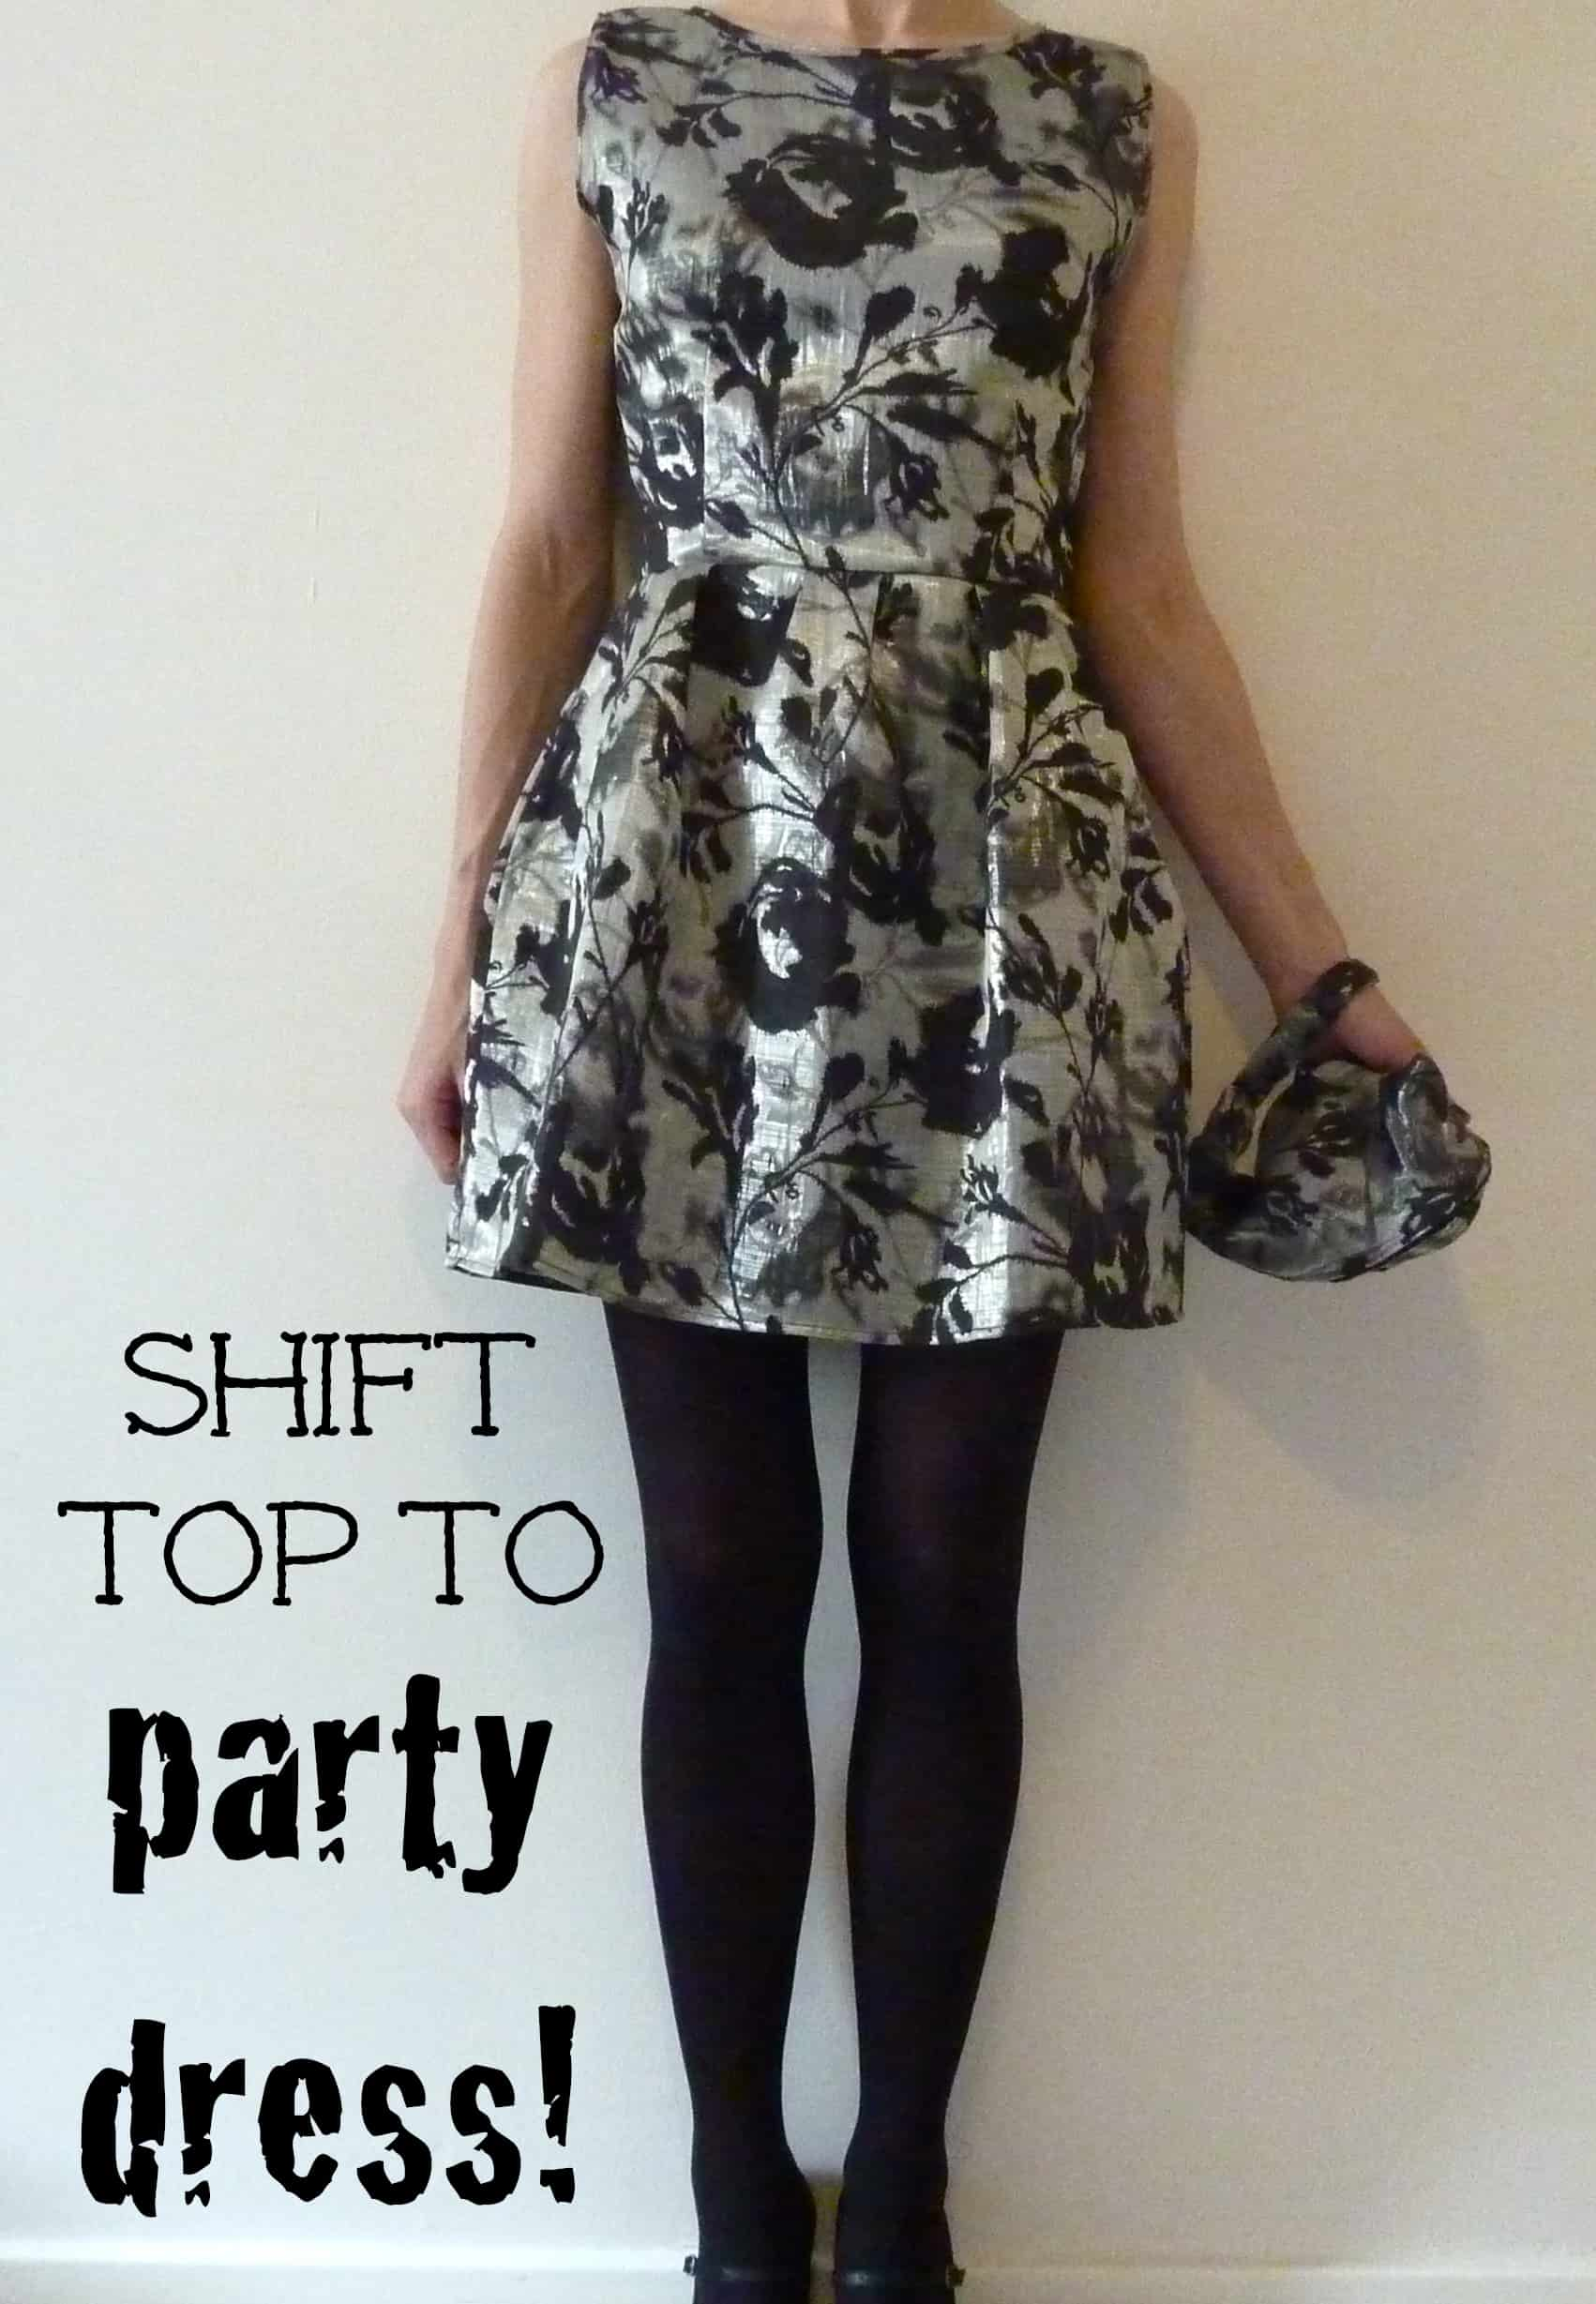 Shift top to party dress